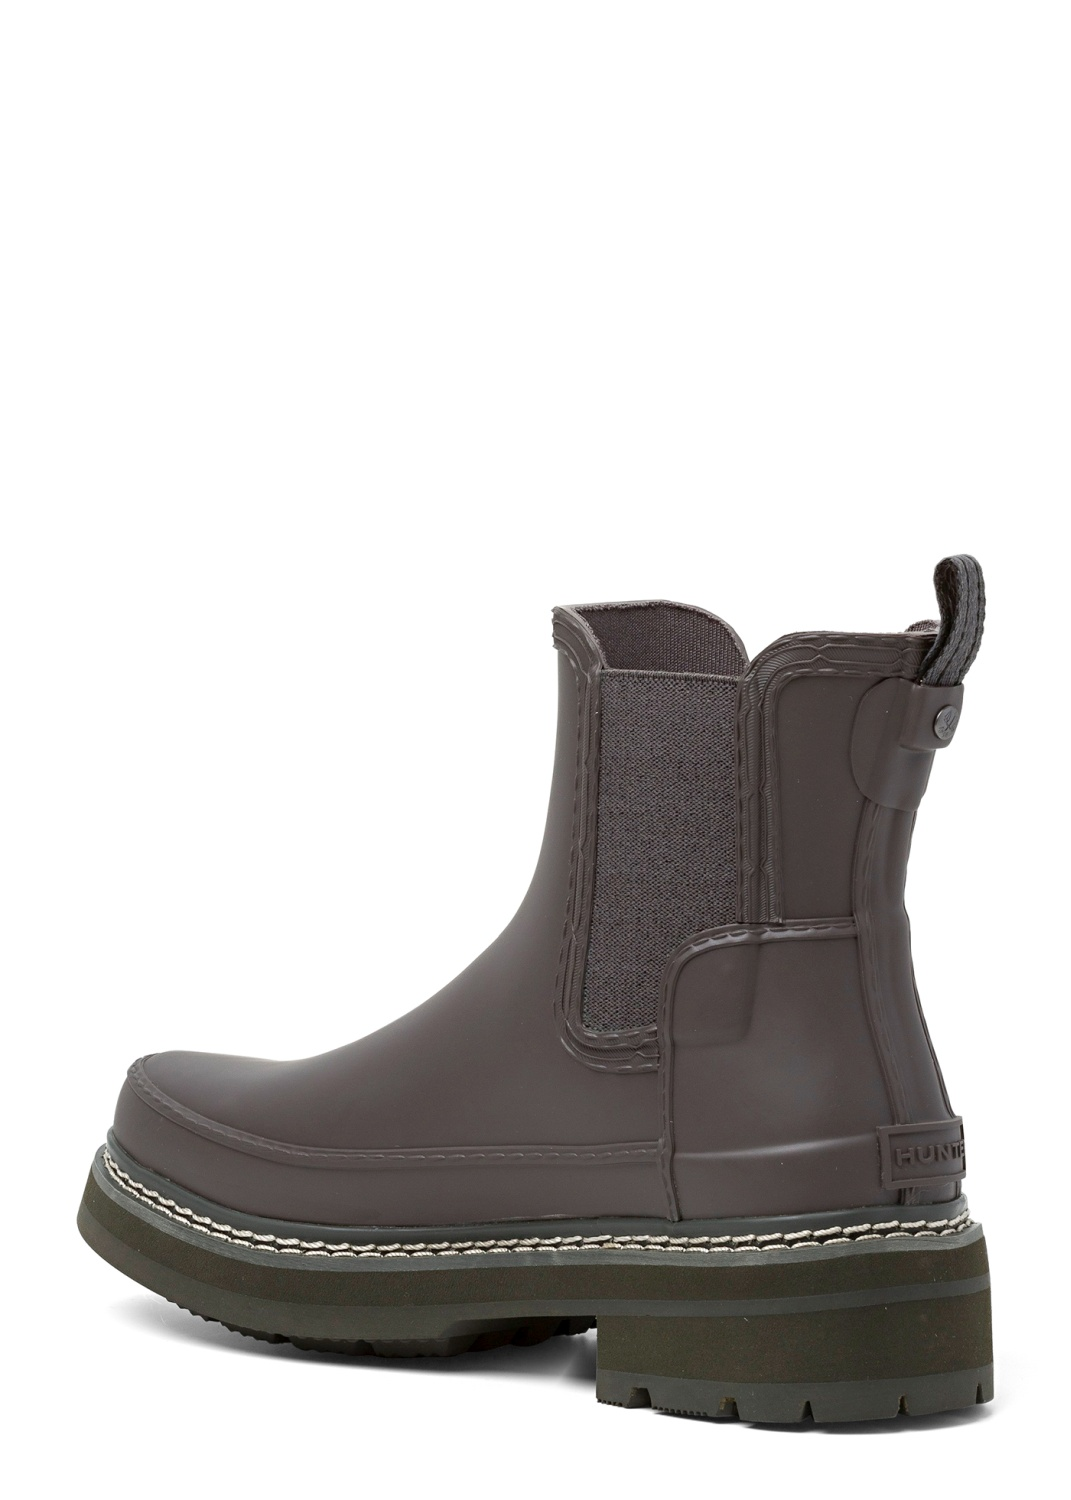 4_Refined Stitch Chelsea Boot image number 2